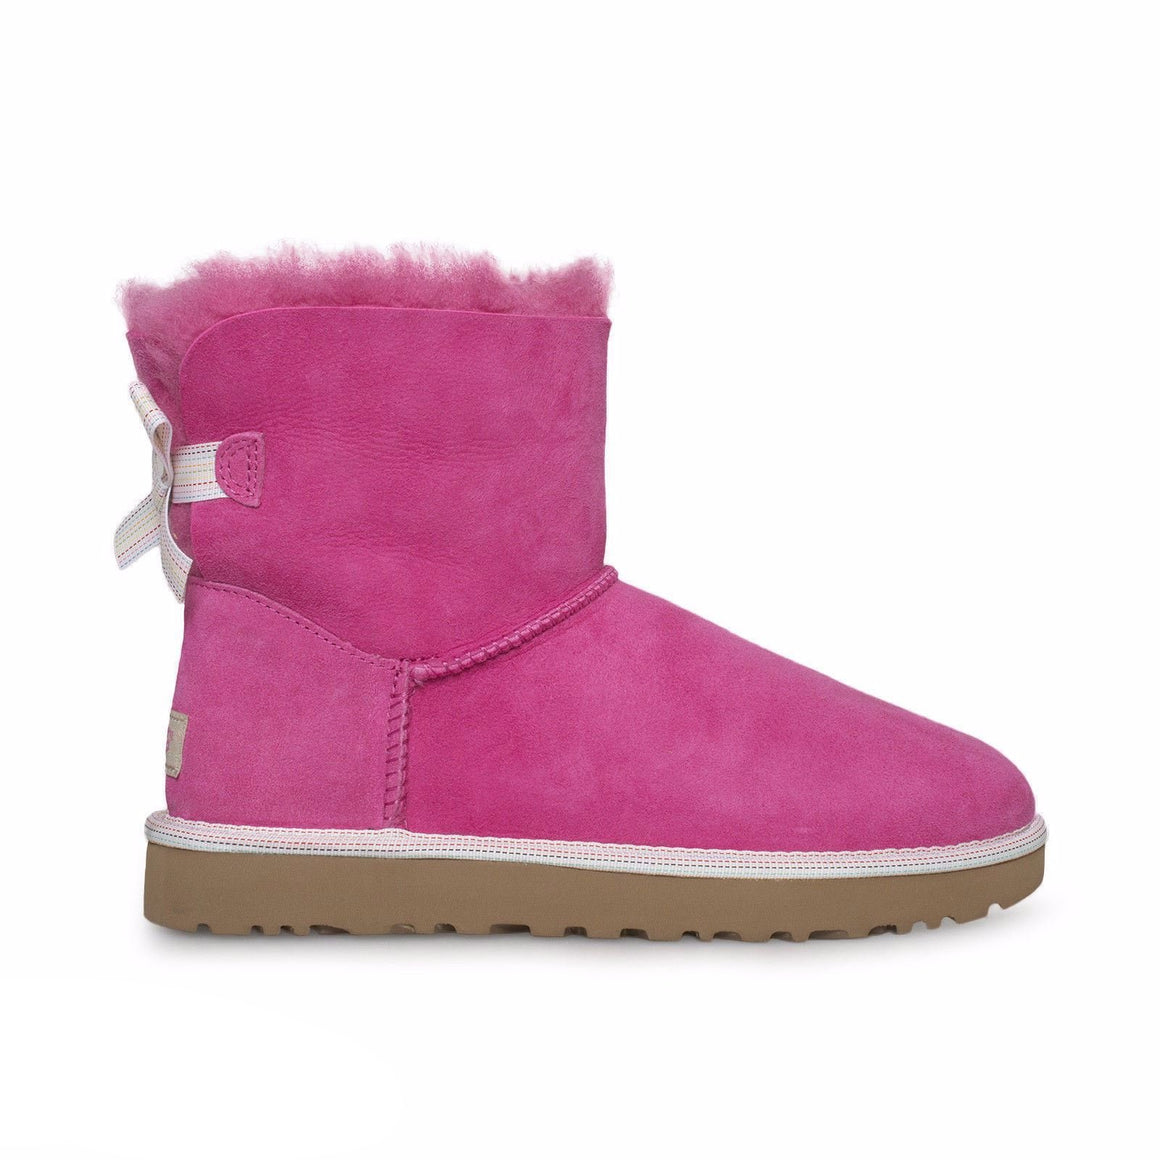 UGG Mini Bailey Bow Weave Pink Azalea Boots